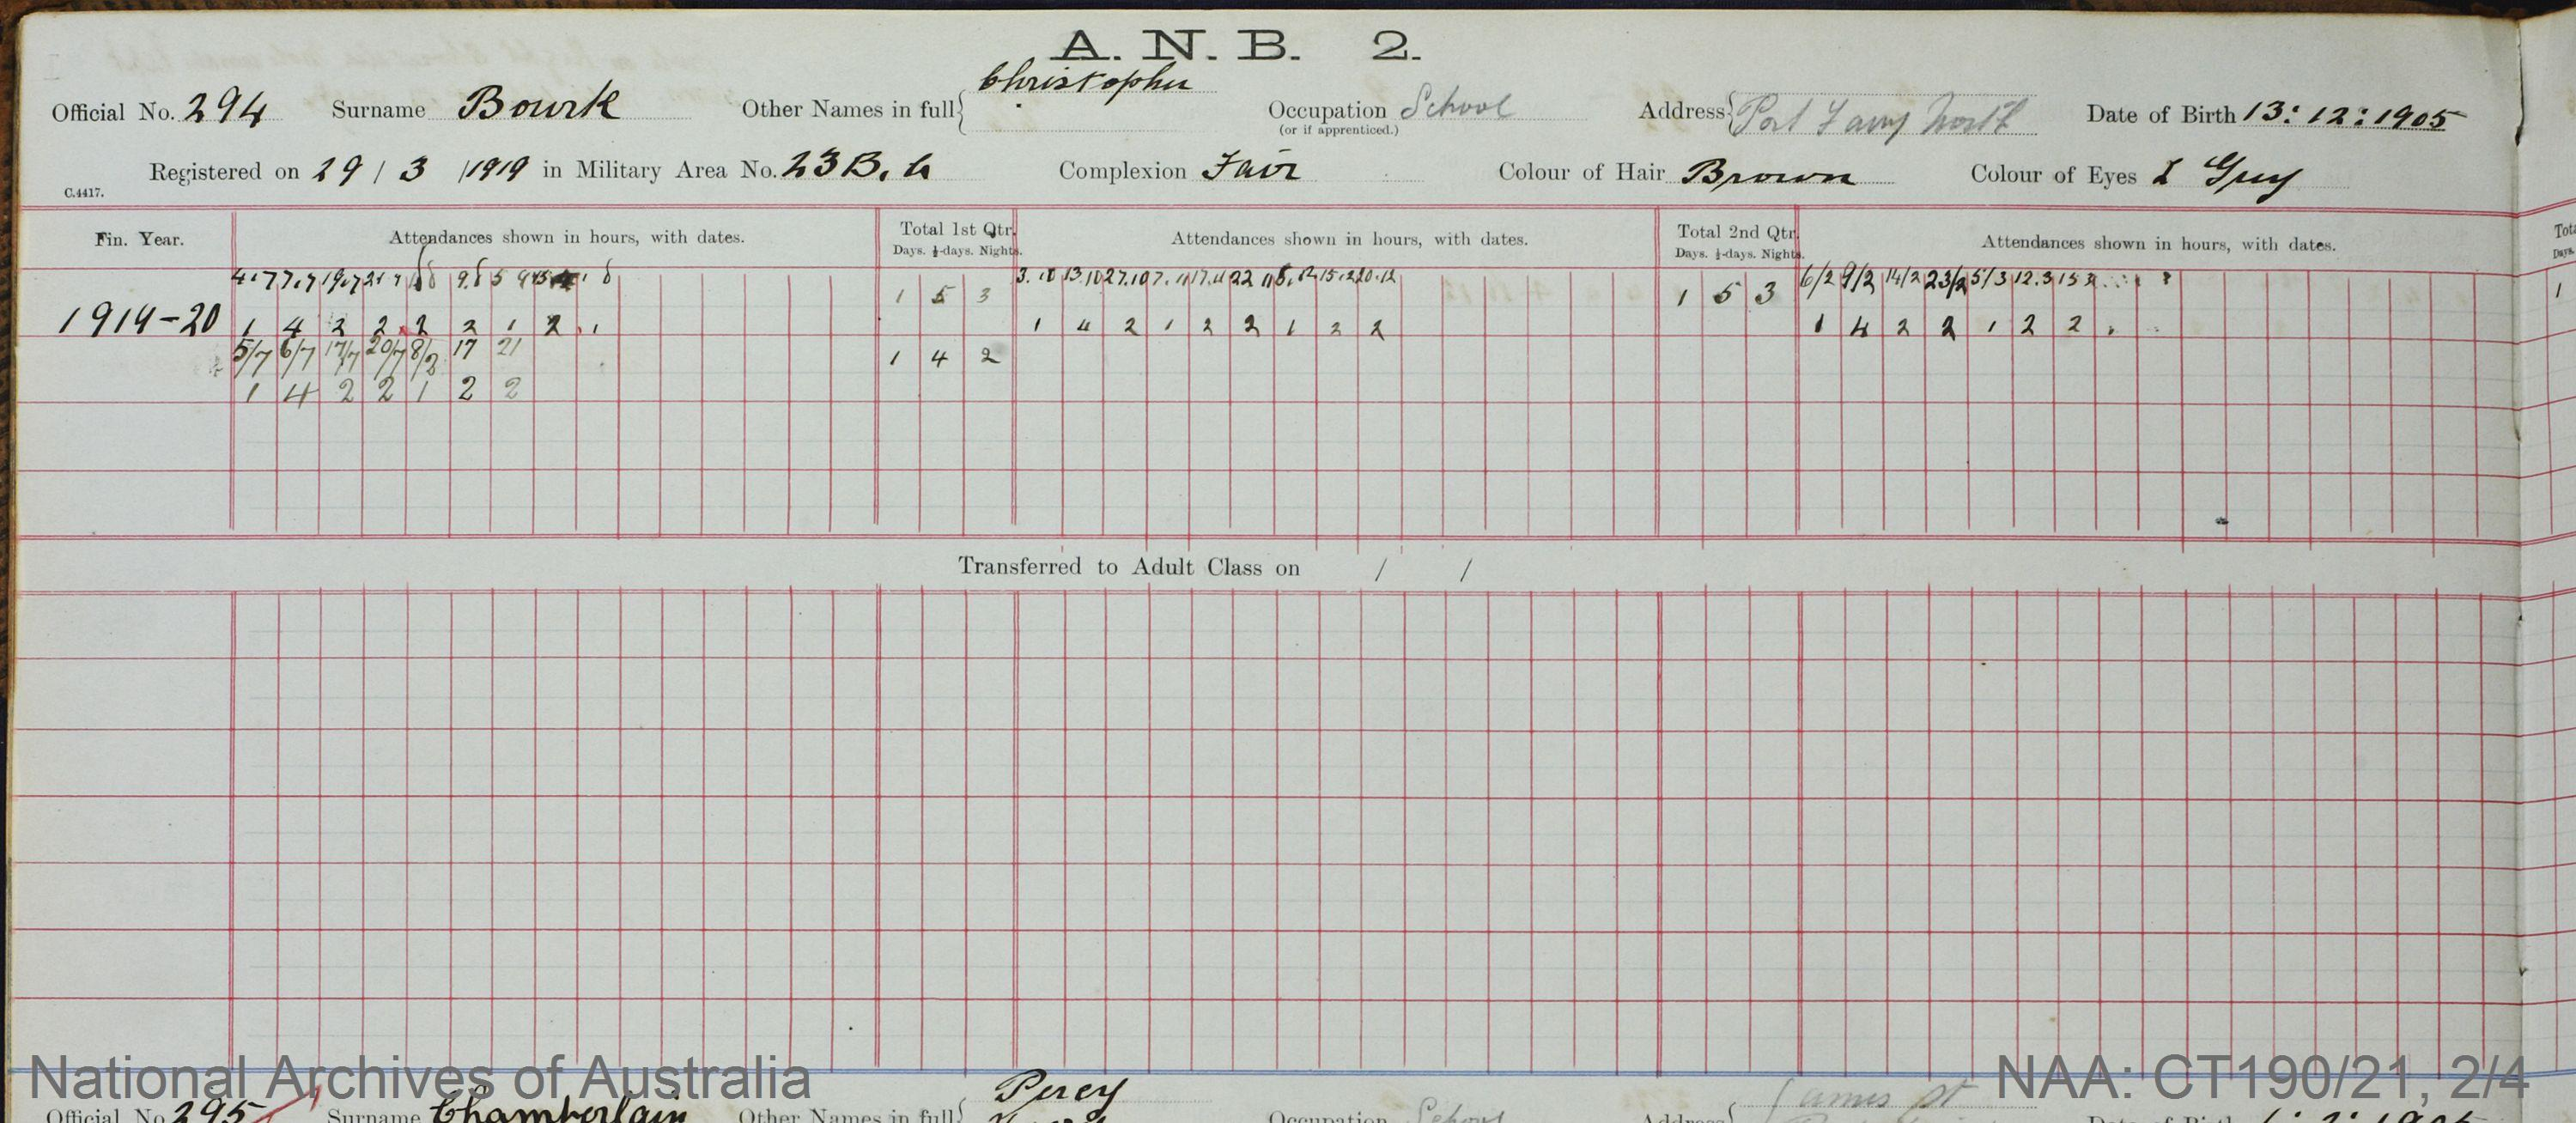 SURNAME - BOURK;  GIVEN NAME(S) - Christopher  OFFICIAL NUMBER - 294;  DATE OF BIRTH - 13 December 1905;  PLACE OF BIRTH - [Unknown];  NEXT OF KIN - [Unknown] ;  SERVICE/STATION - Port Fairy;  REGISTRATION DATE - 29 March 1919